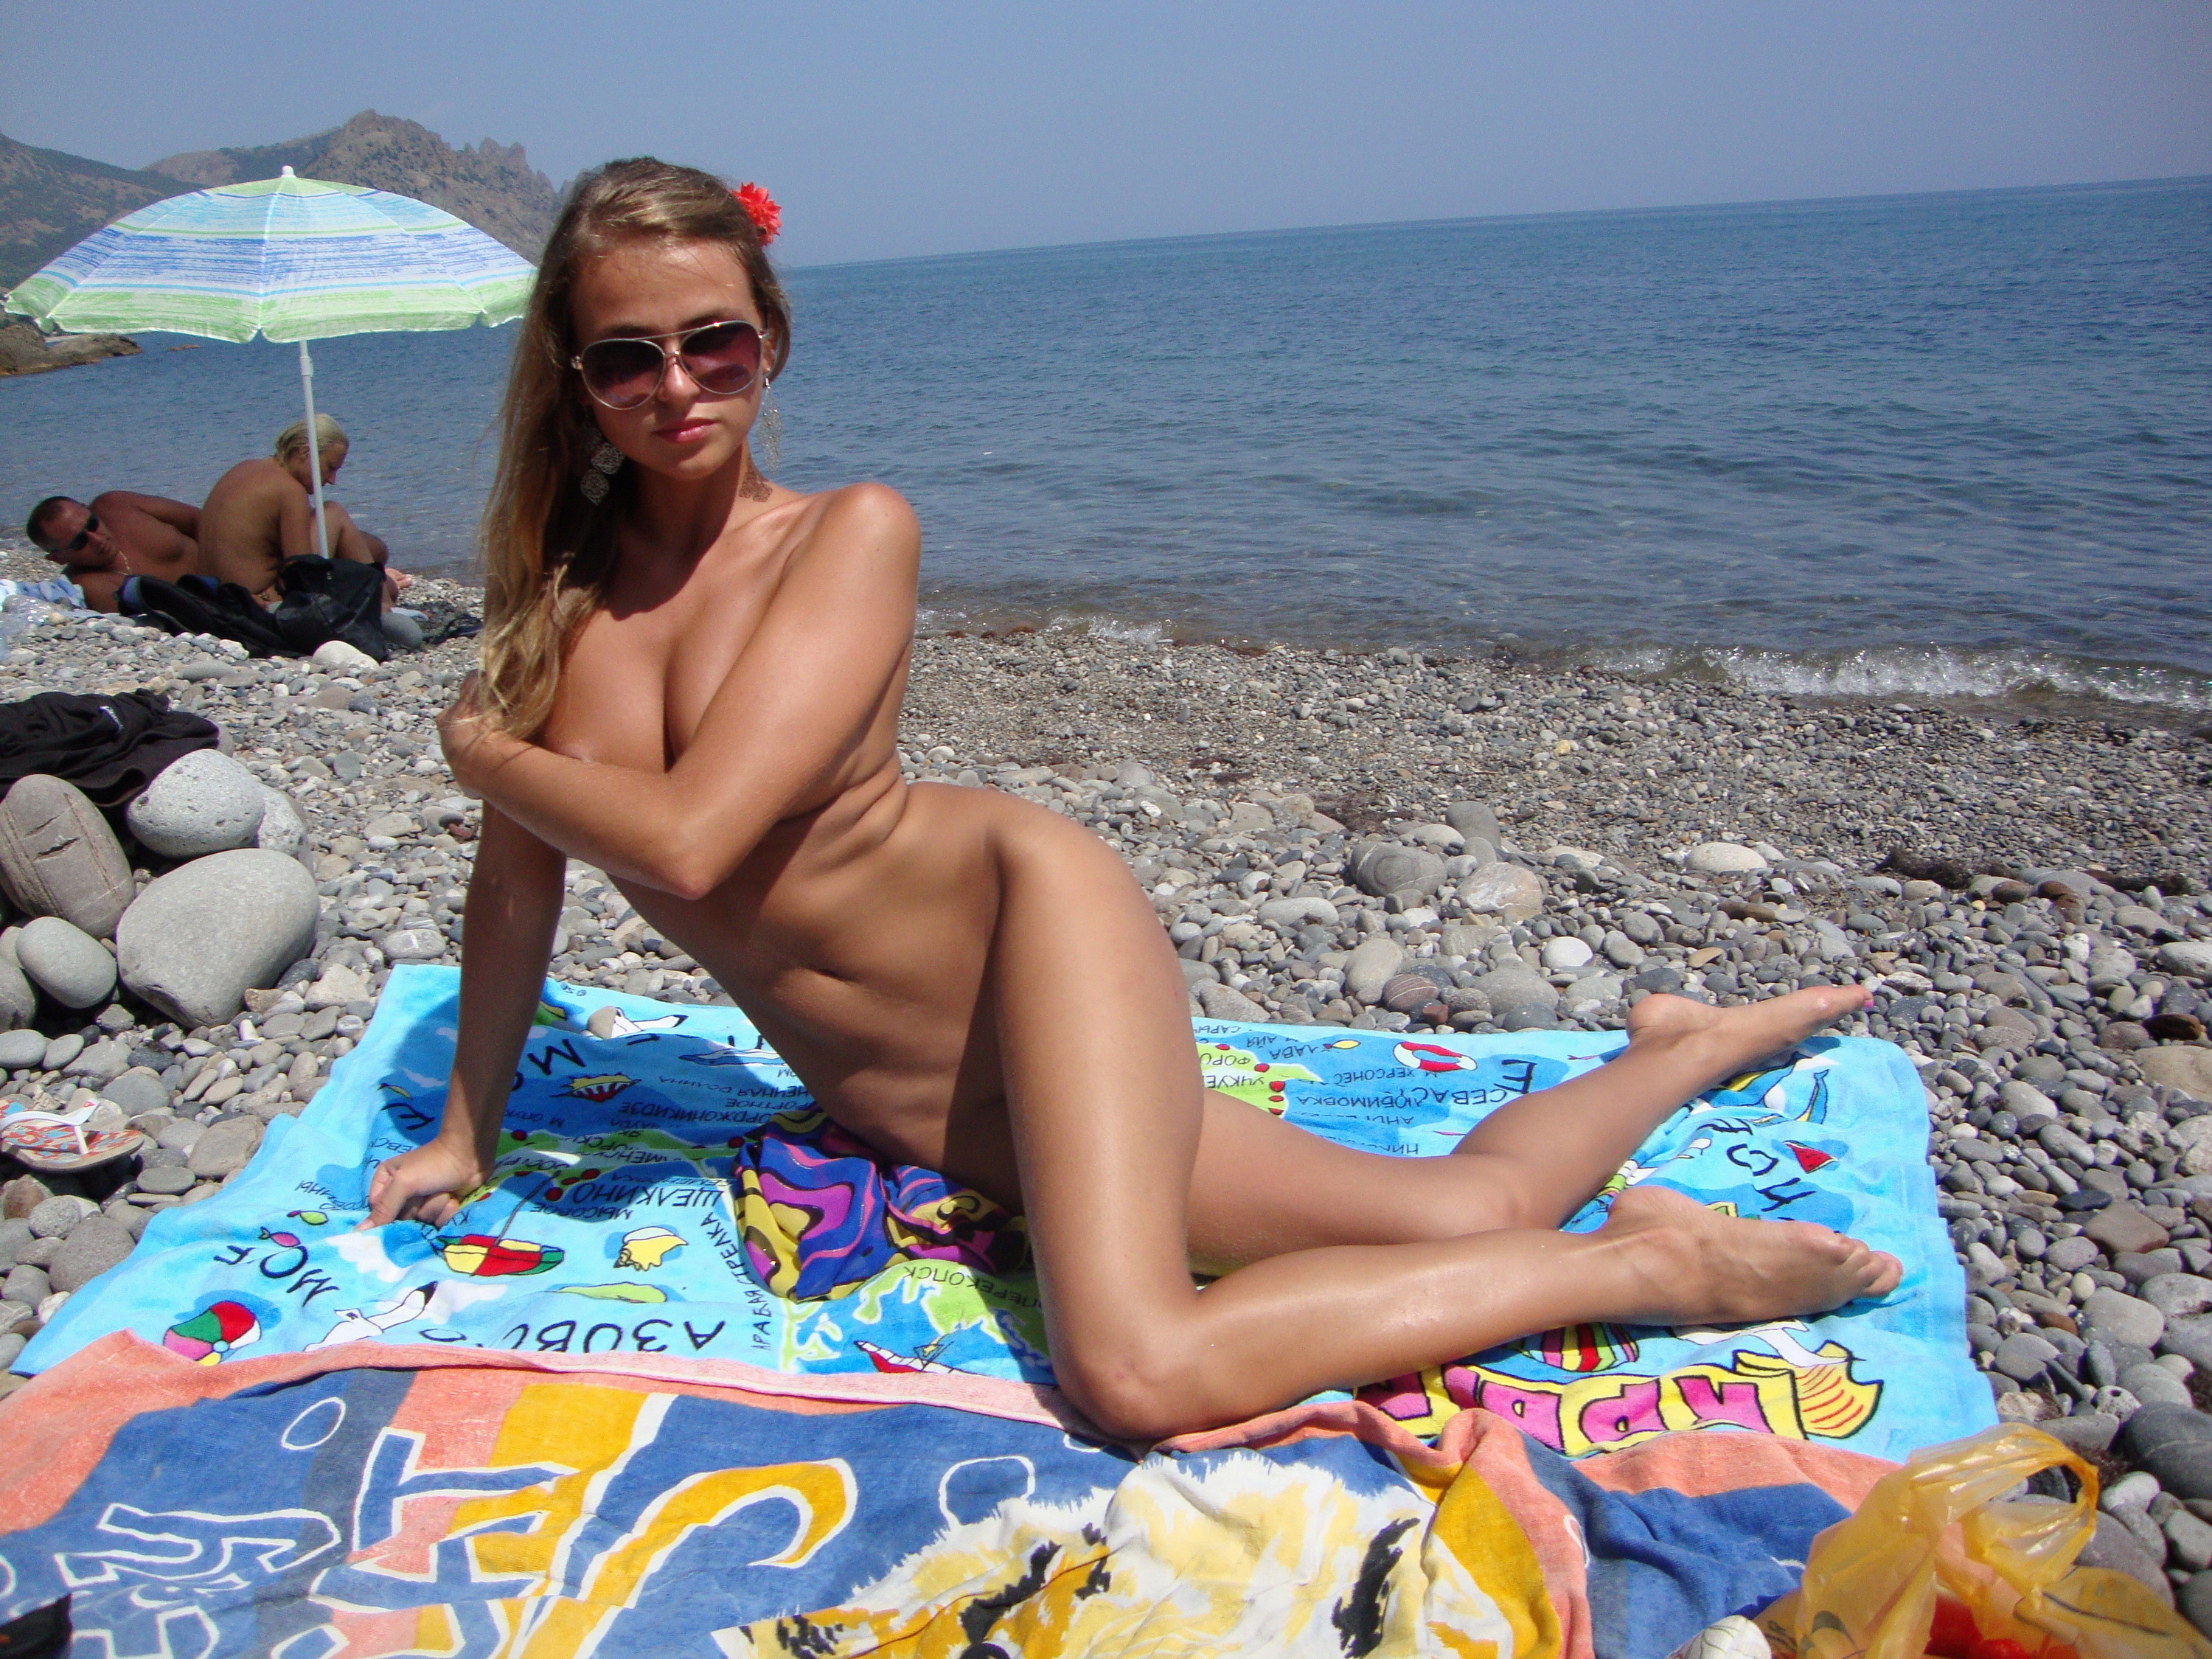 Amateur archive from www excluvidscom 7